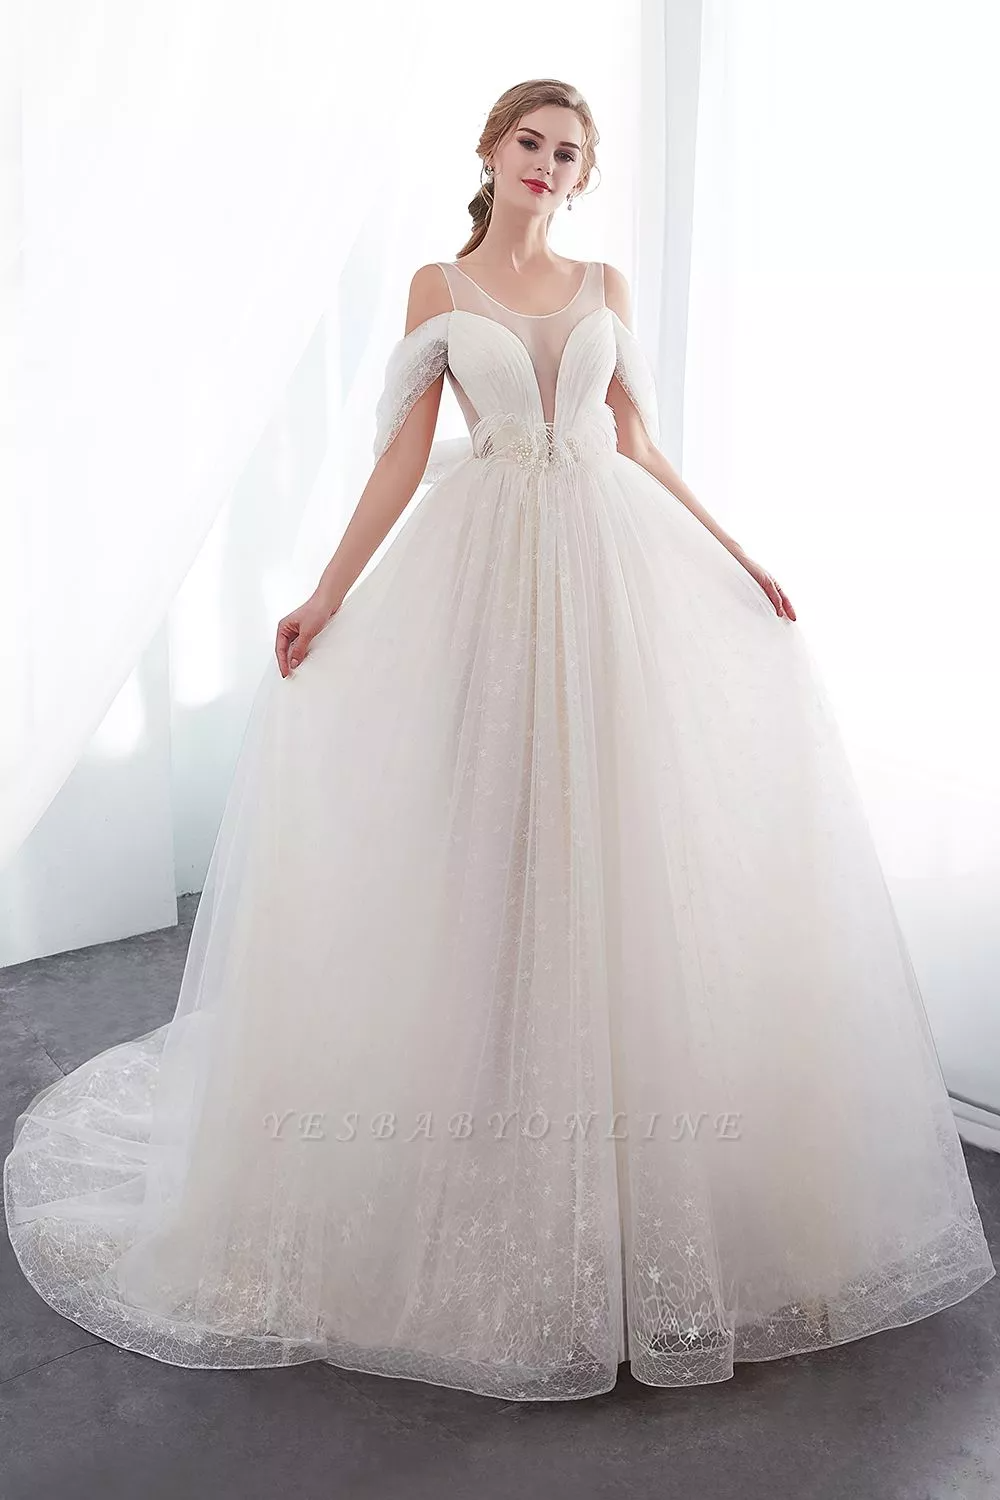 Nancy Affordable Sleeveless Floor Length Lace Ivory Wedding Dresses In 2020 Ivory Wedding Dress Wedding Dresses A Line Wedding Dress